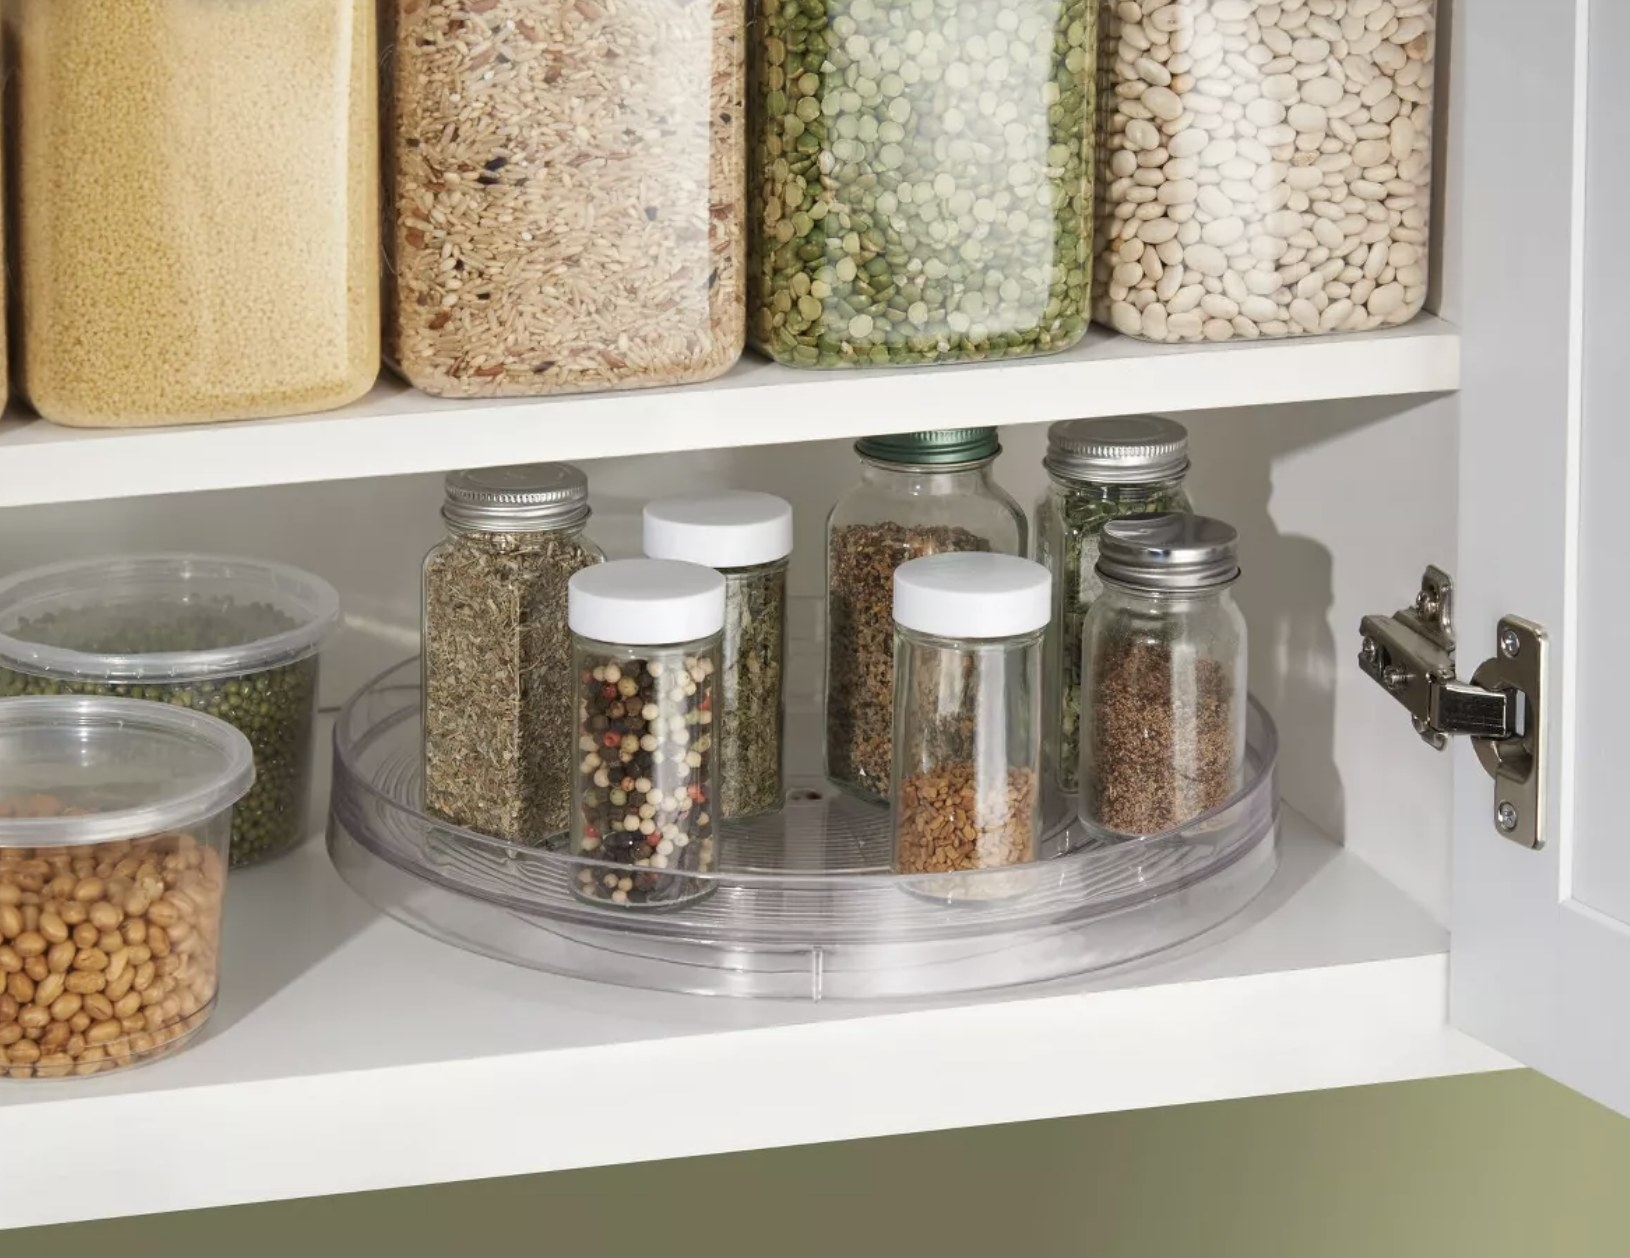 a clear lazy susan in a cupboard holding spices